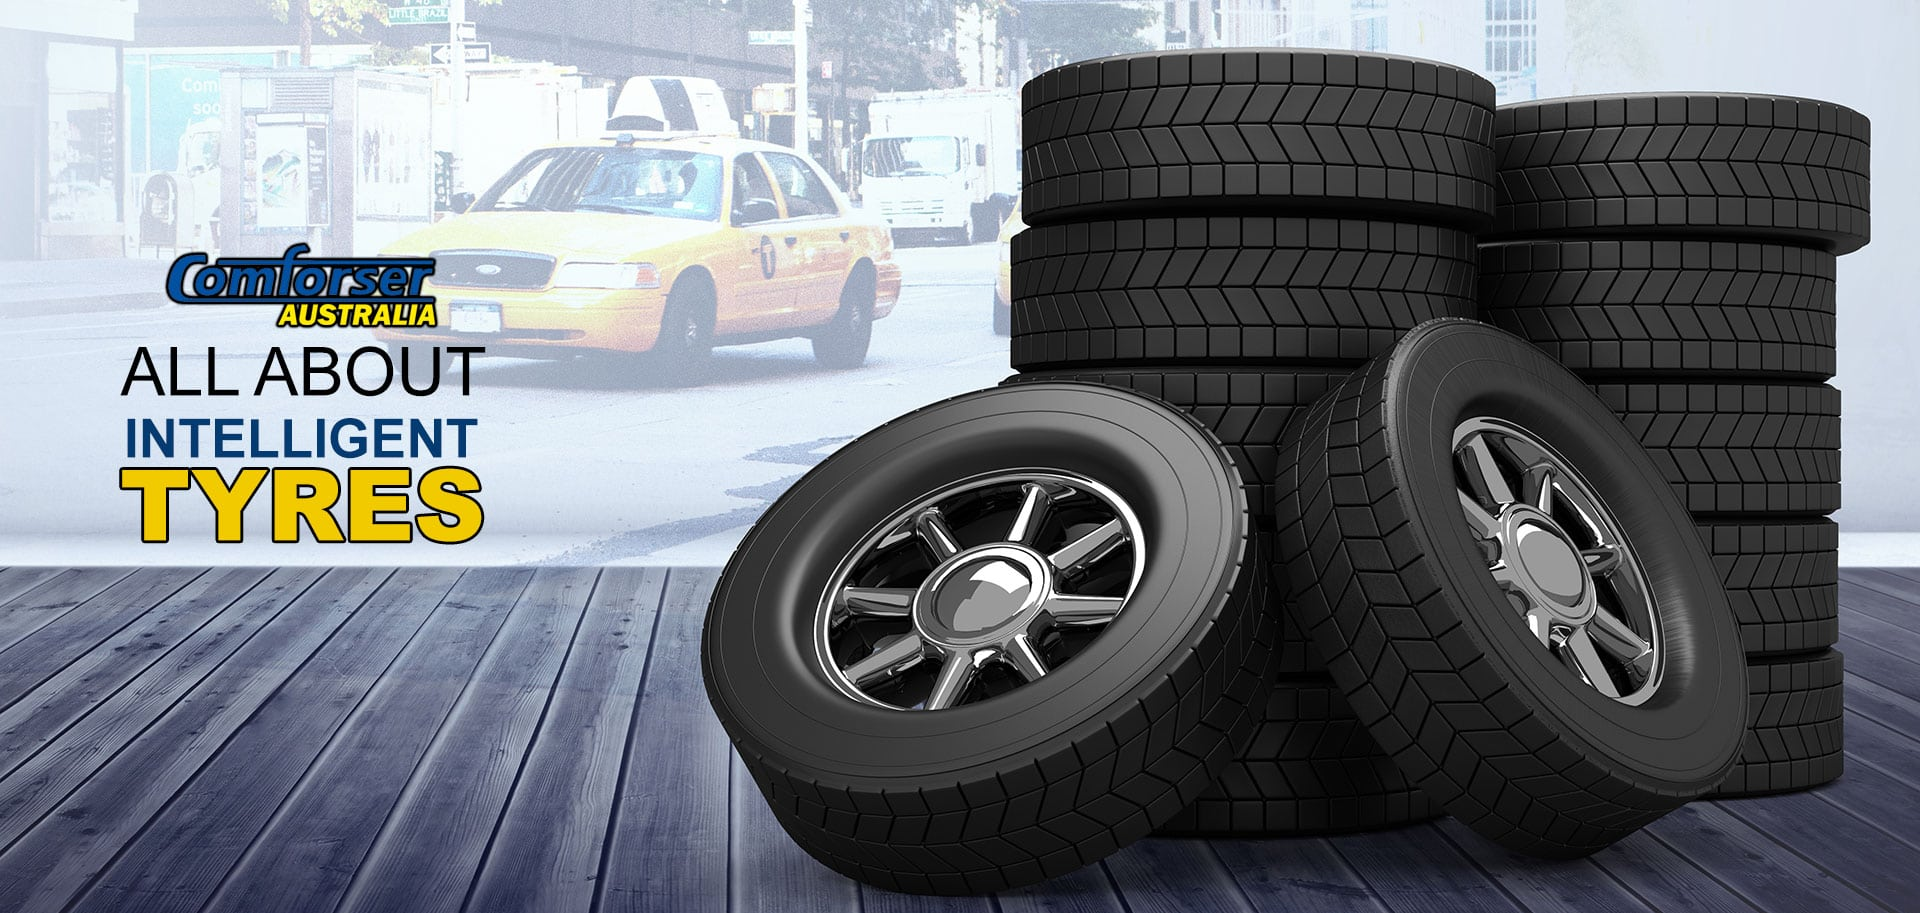 All About Intelligent Tyres